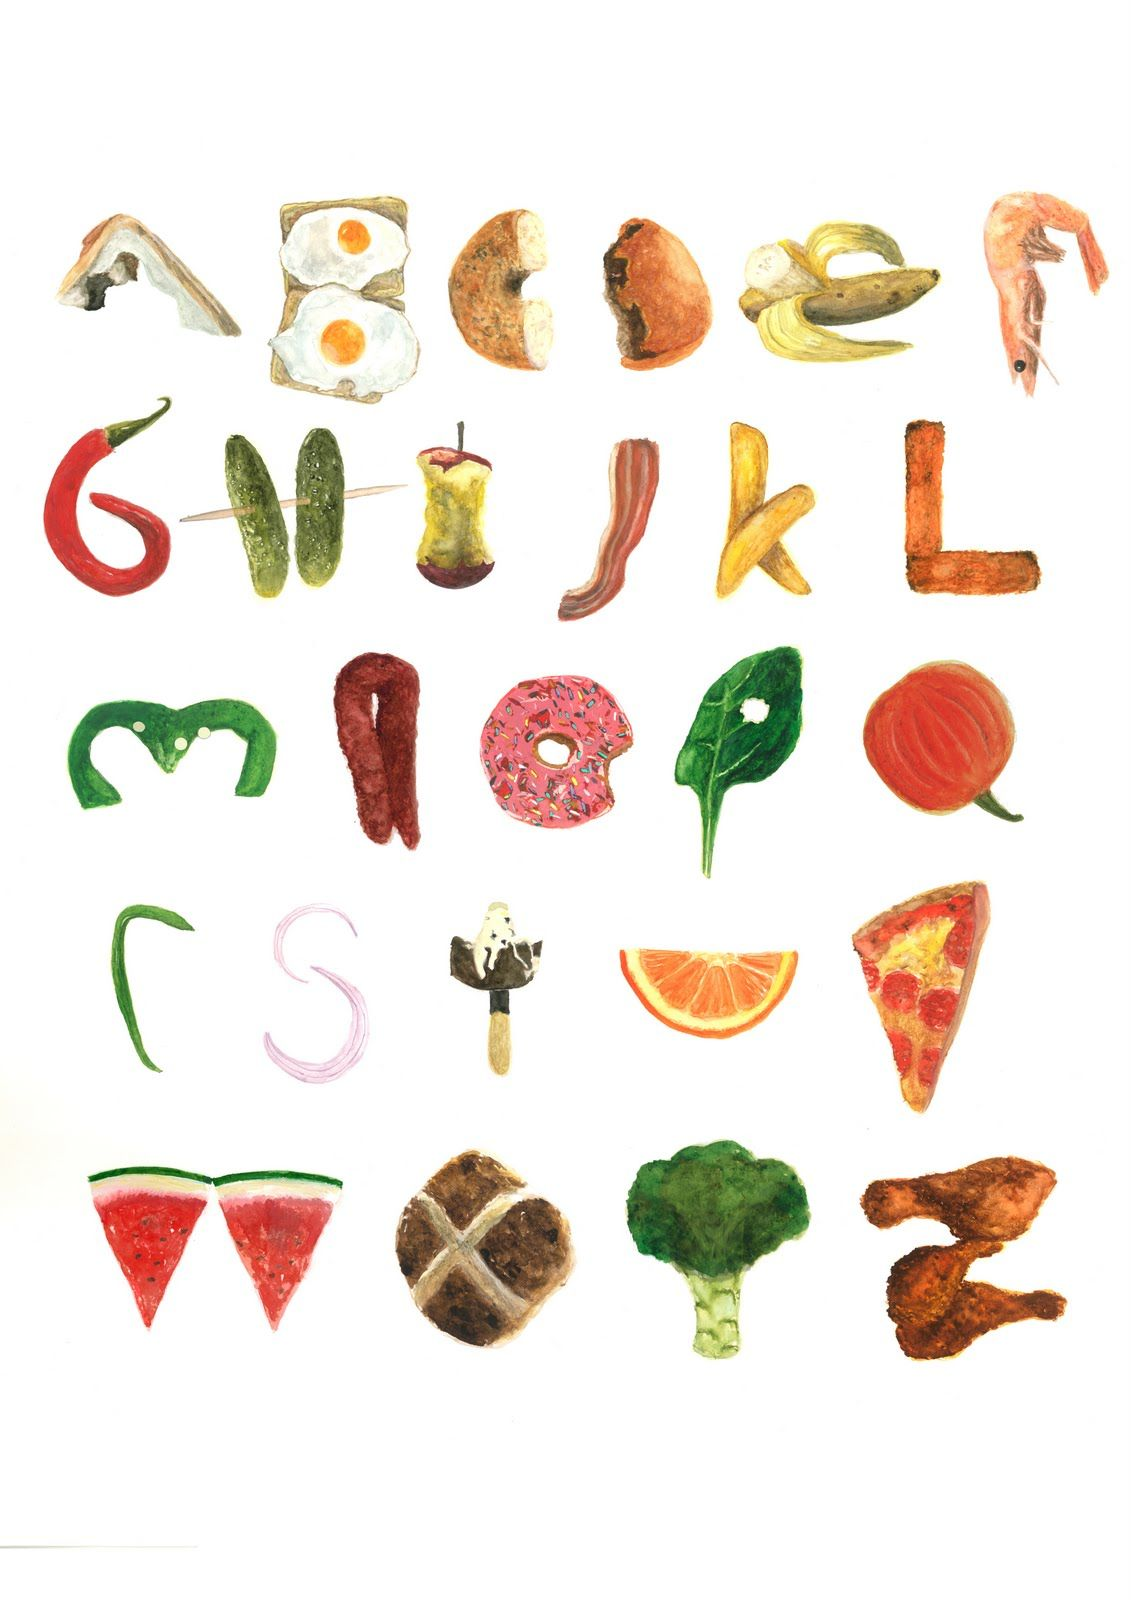 Lucy wragg illustration new typography work for Cuisine font